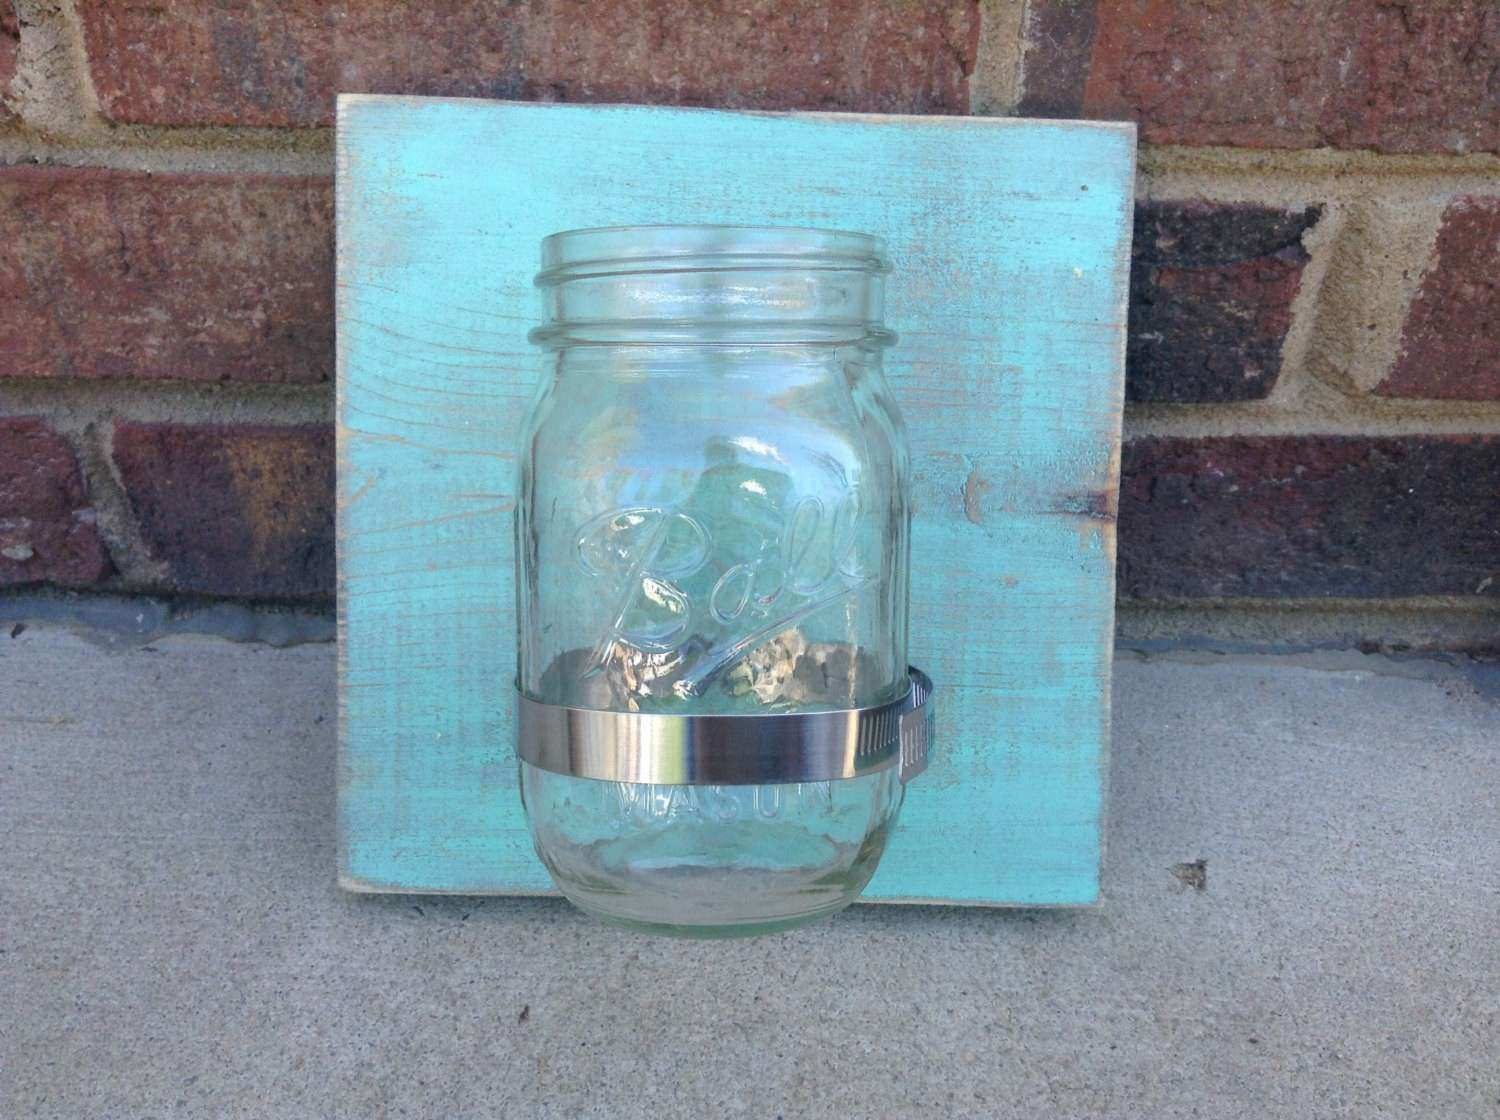 Mason Jar Wall Art Inspirational Mason Jar Wall Decor Rustic Home Decor by thesoutherndelight